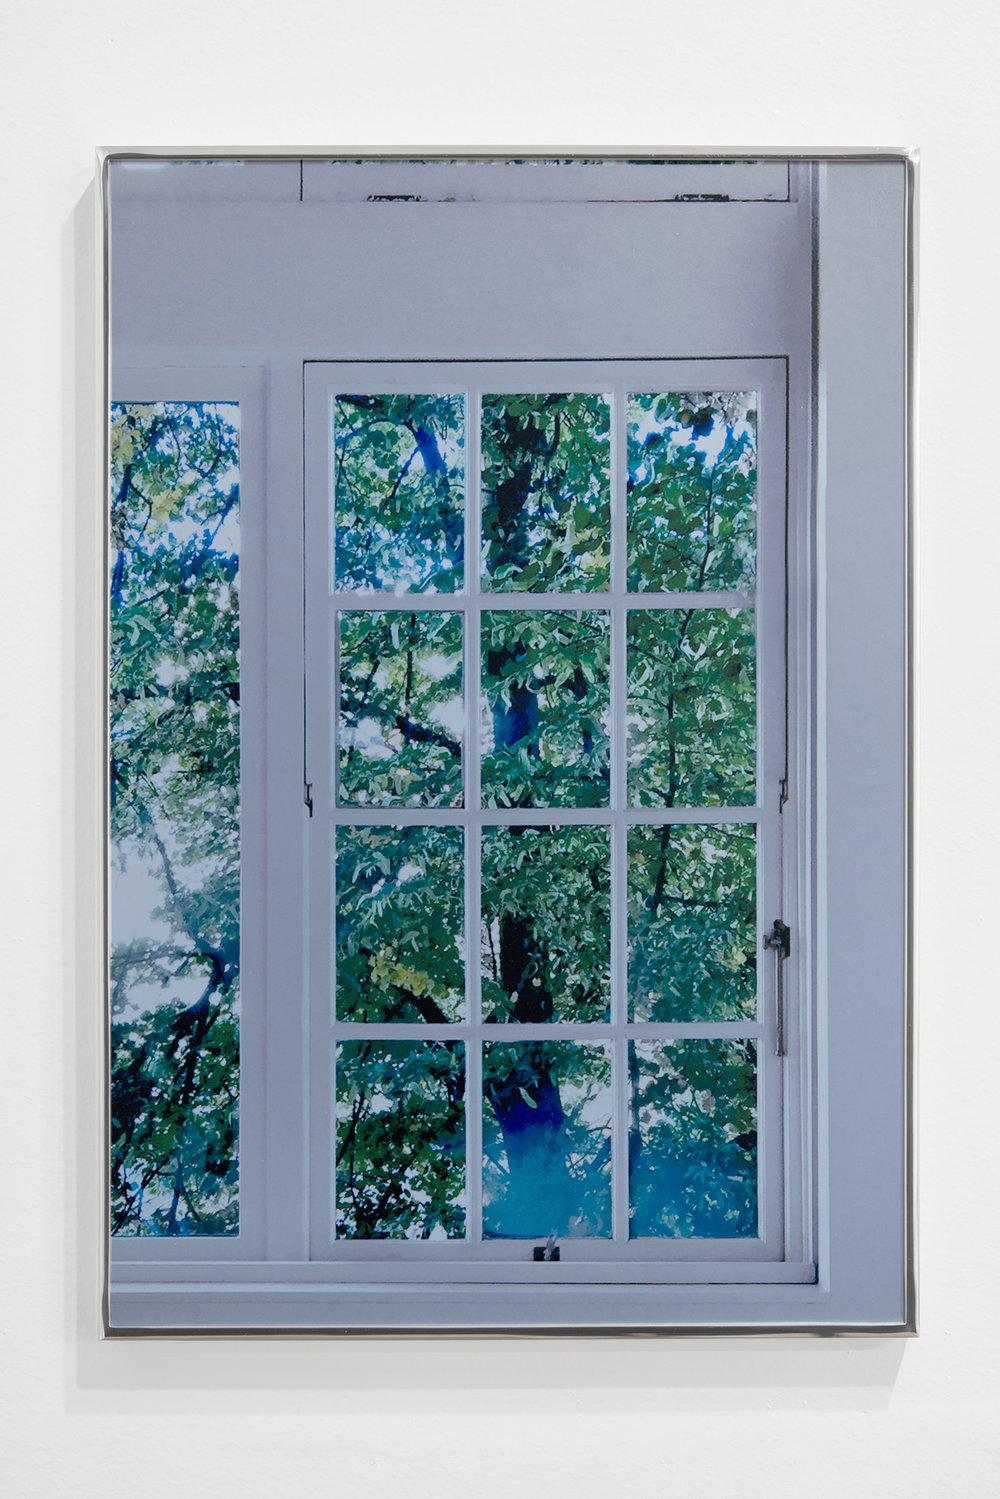 Carlin Brown_UNTITLED_(FAMILIAR_WINDOW).jpg